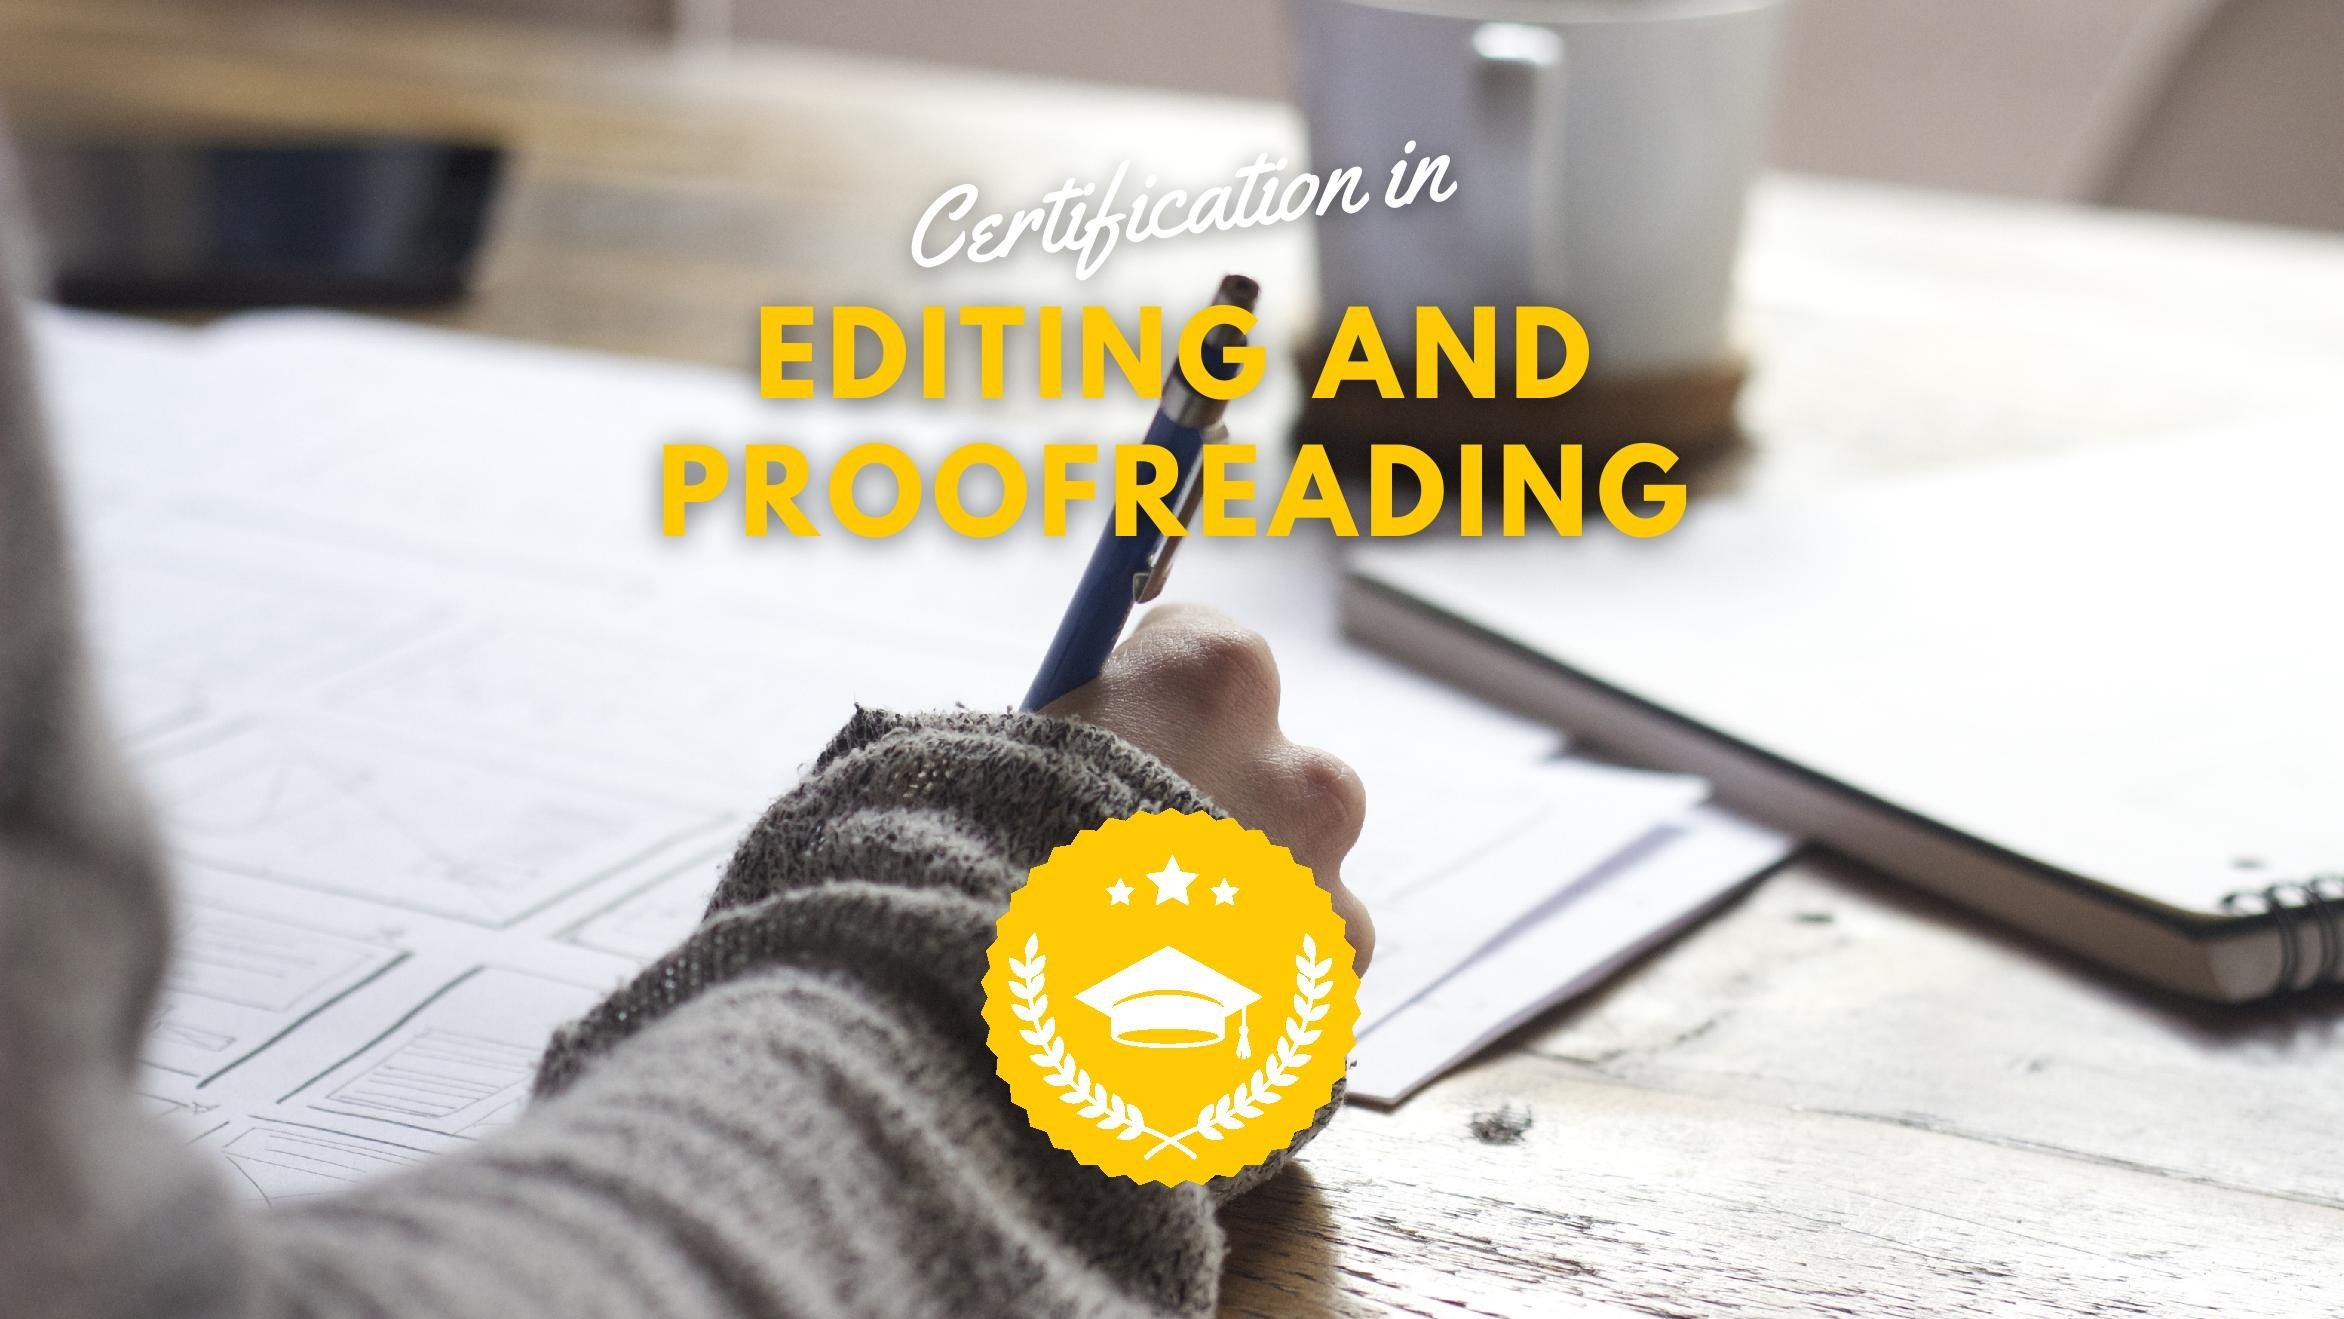 Certification in Editing and Proofreading